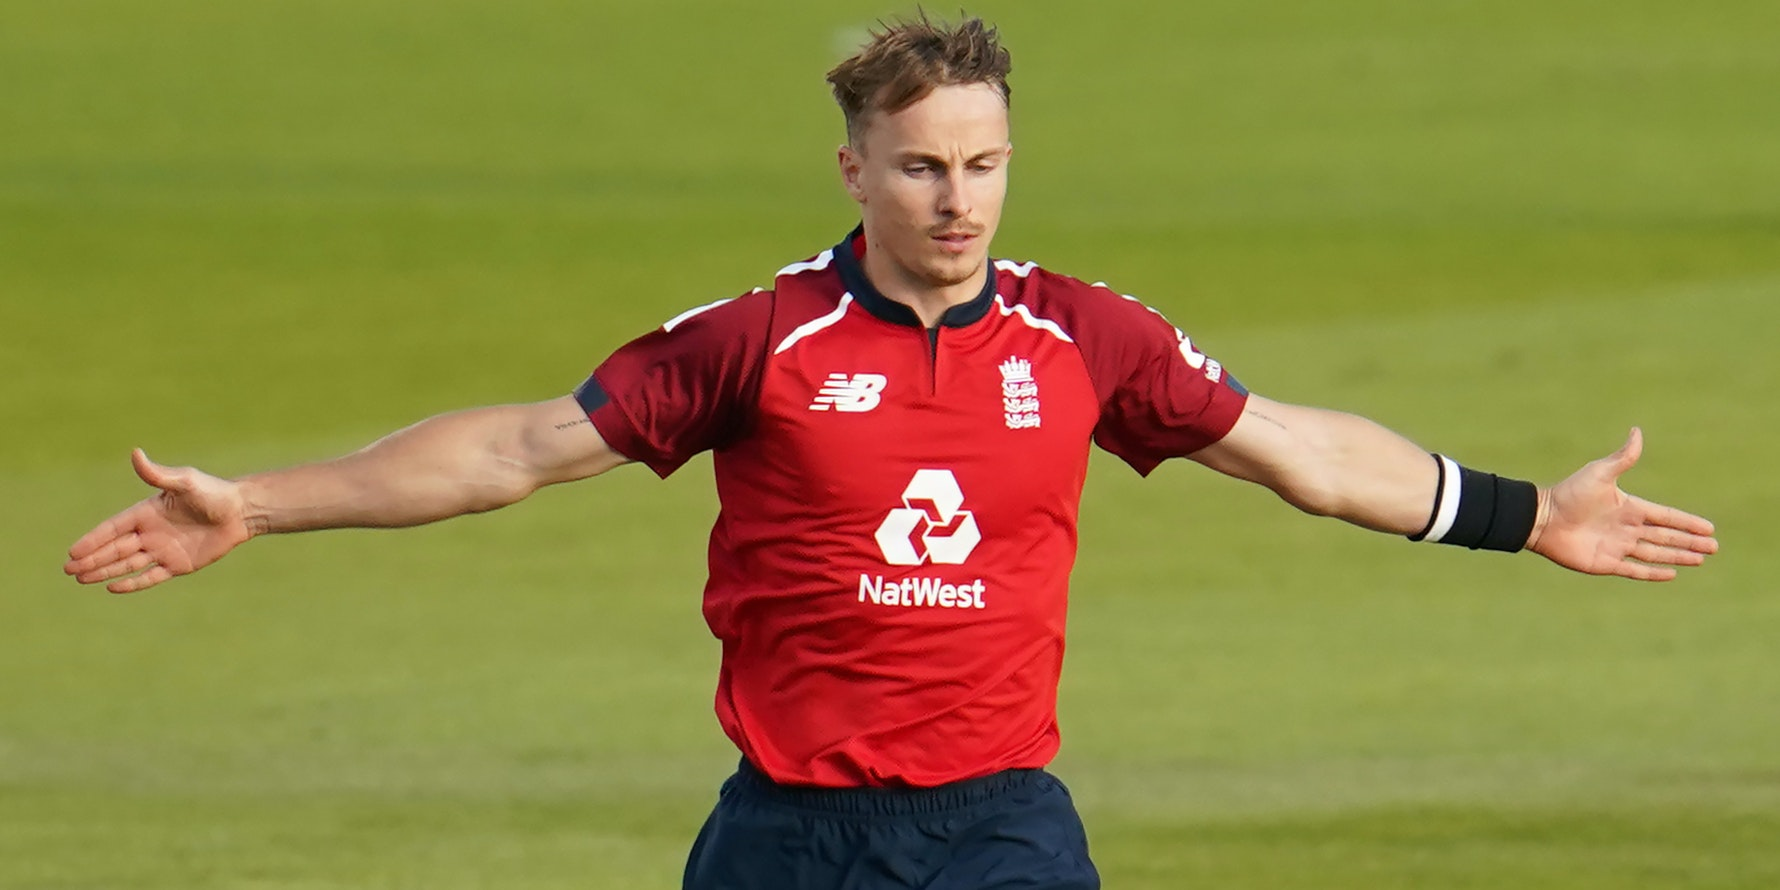 Tom Curran happy for cricket to carry on innovating in quest for entertainment - Cricket365